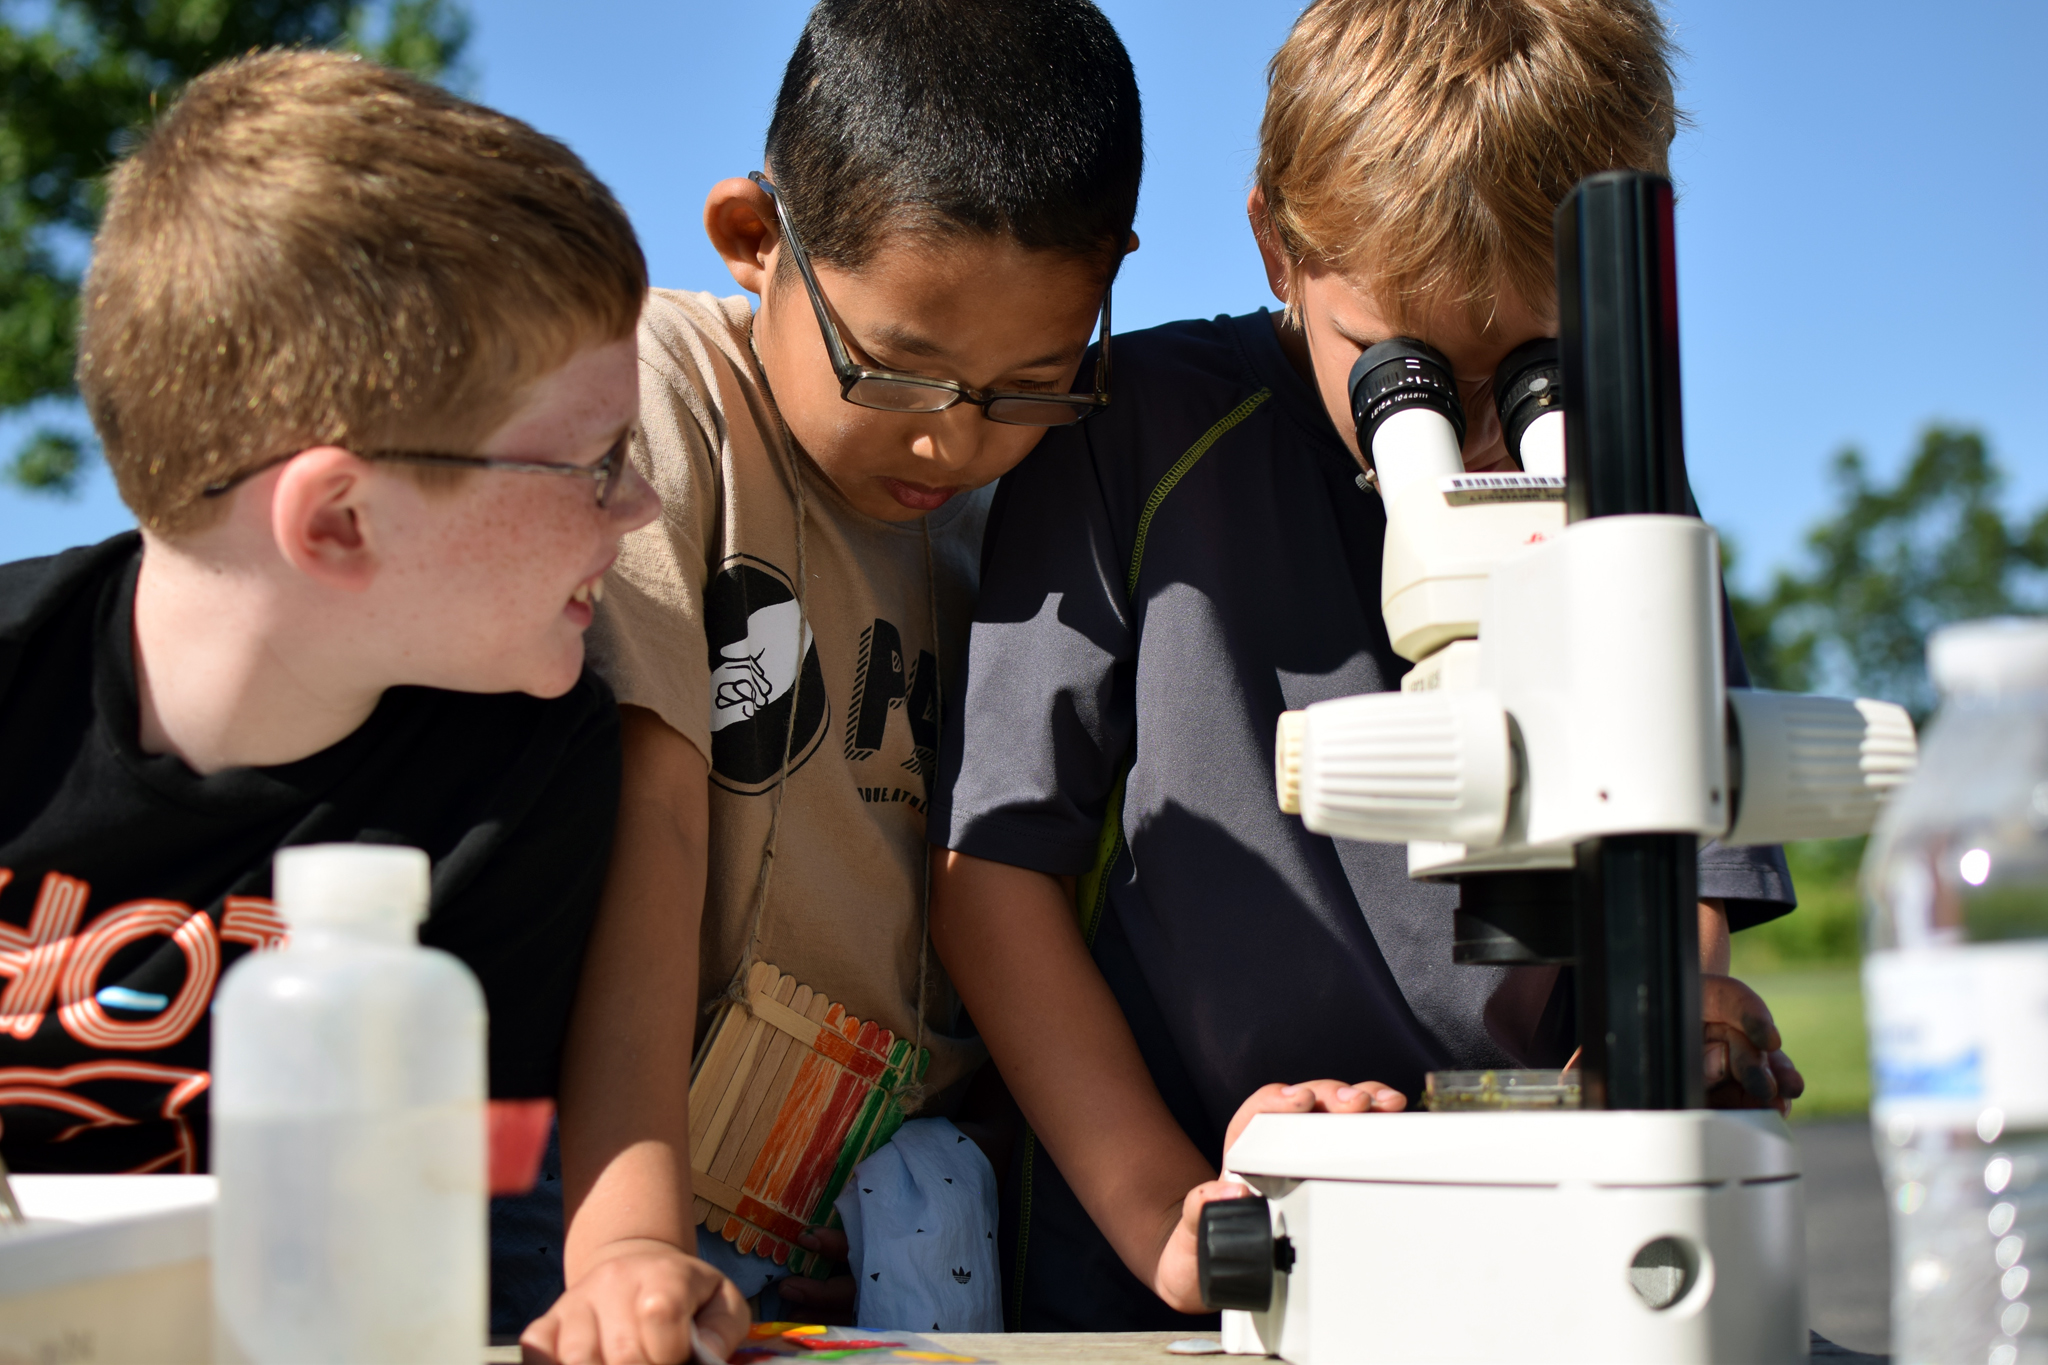 Boys using a microscope for scientific experimentation